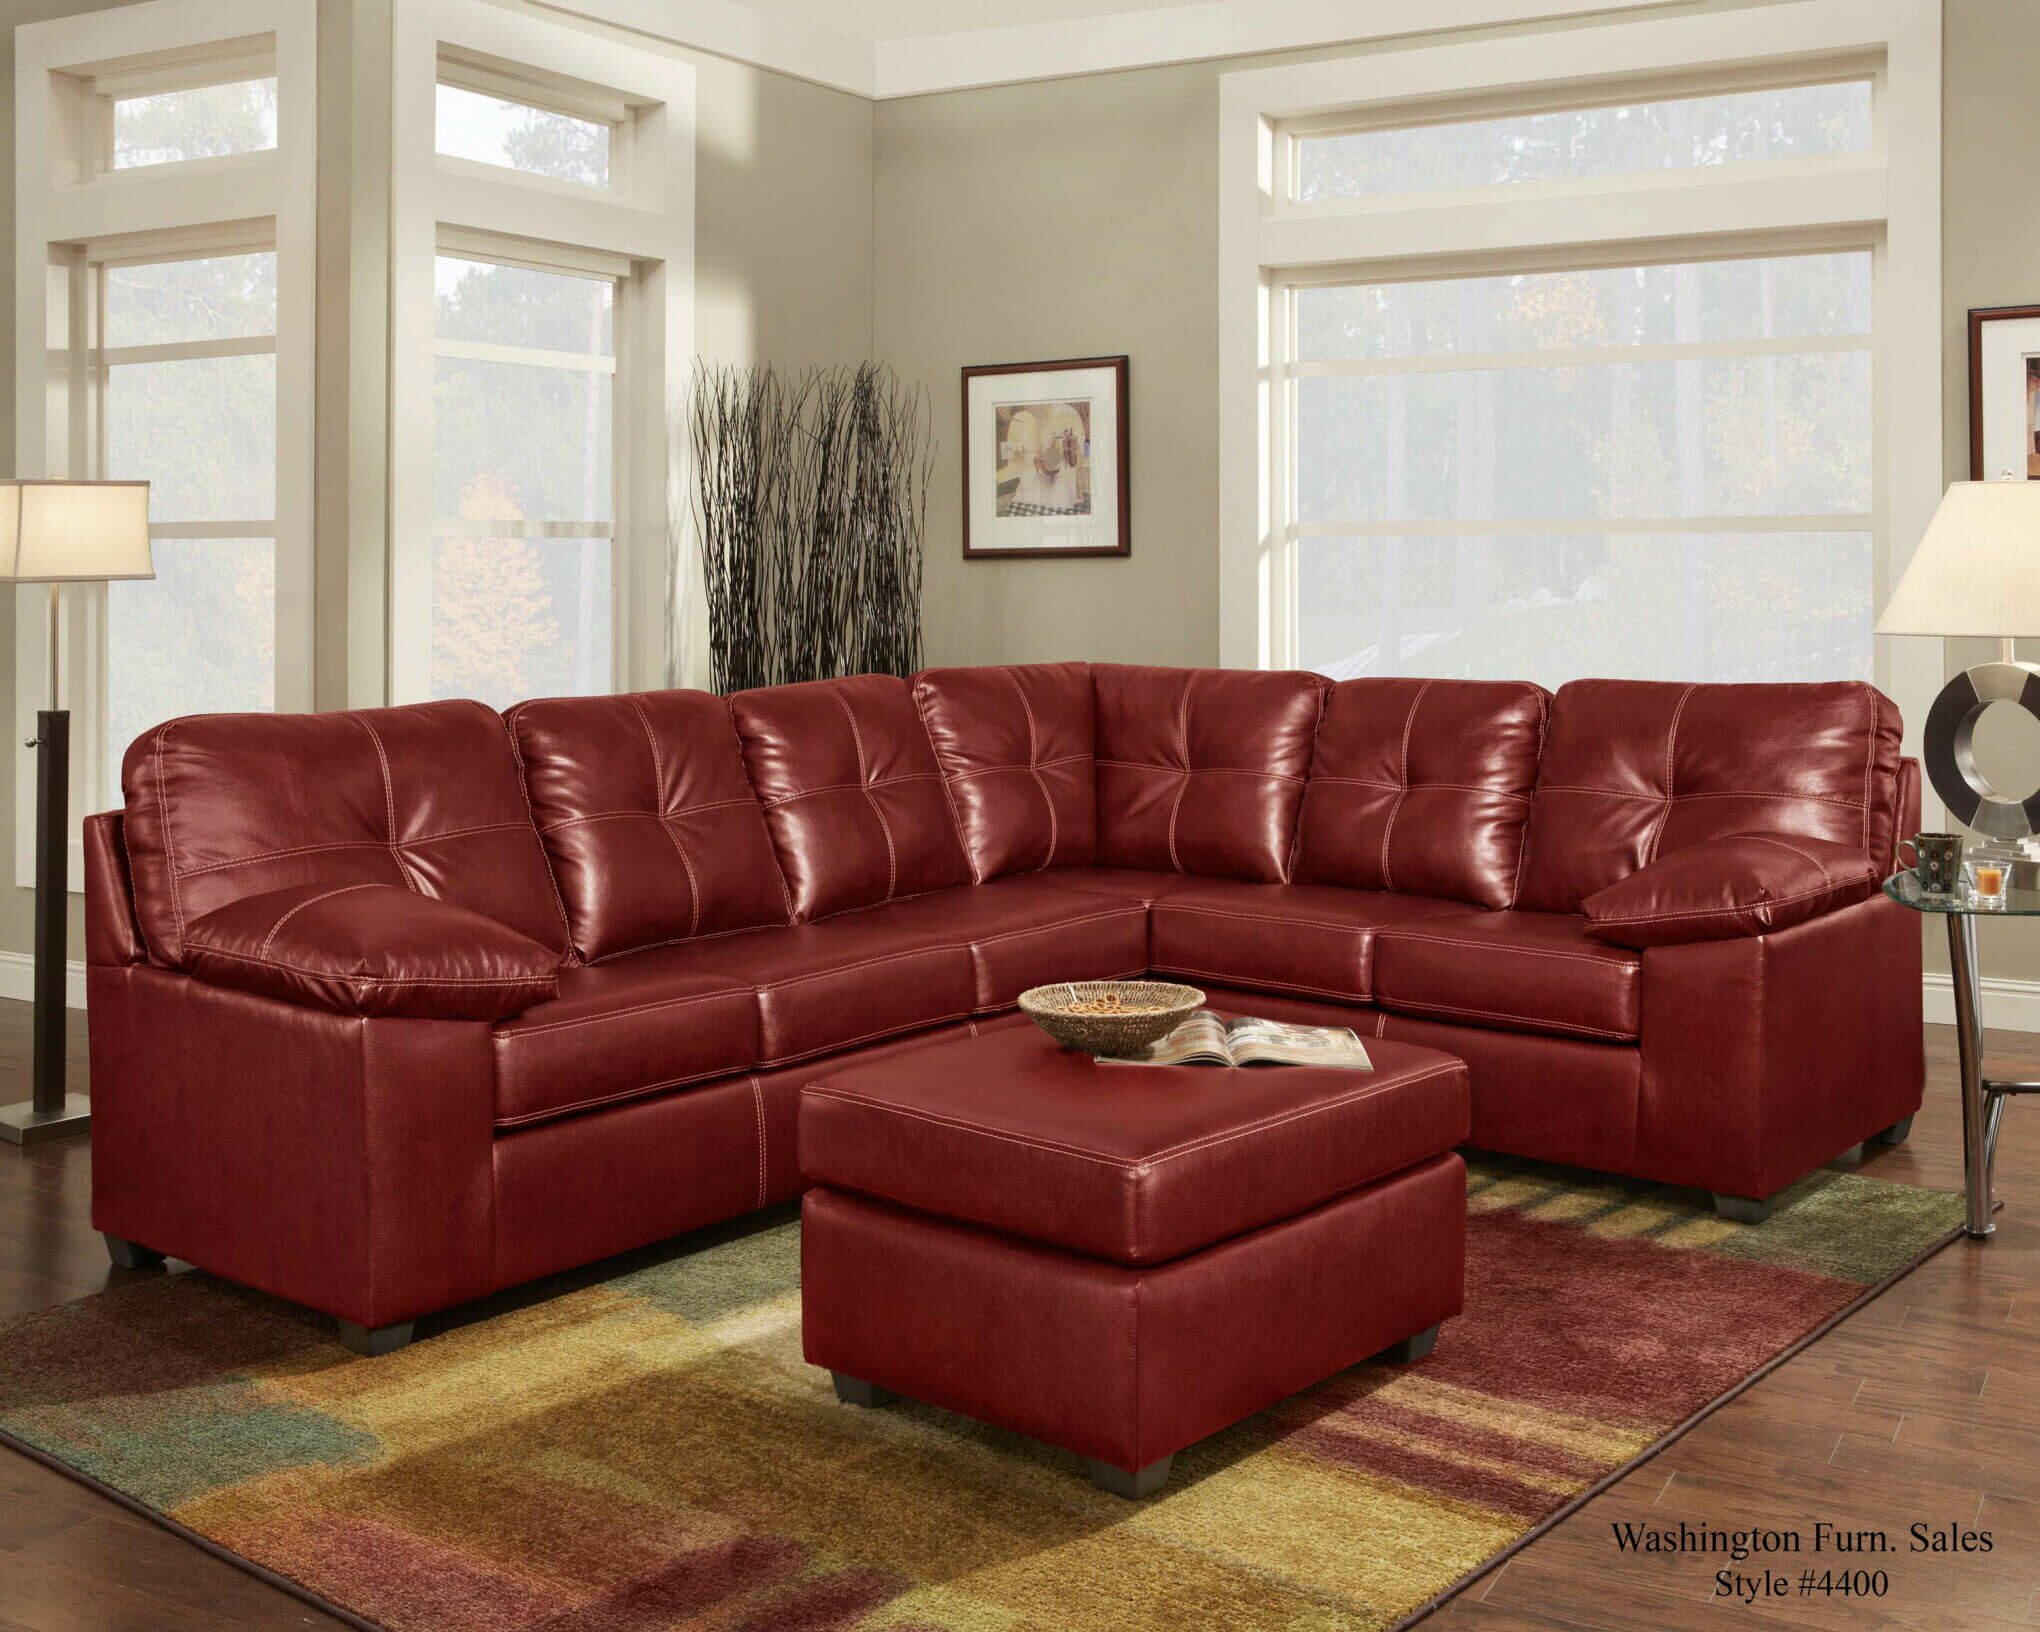 Red Sectional Sofa | Tan Sectional with Chaise | Sale on Sectional Sofas